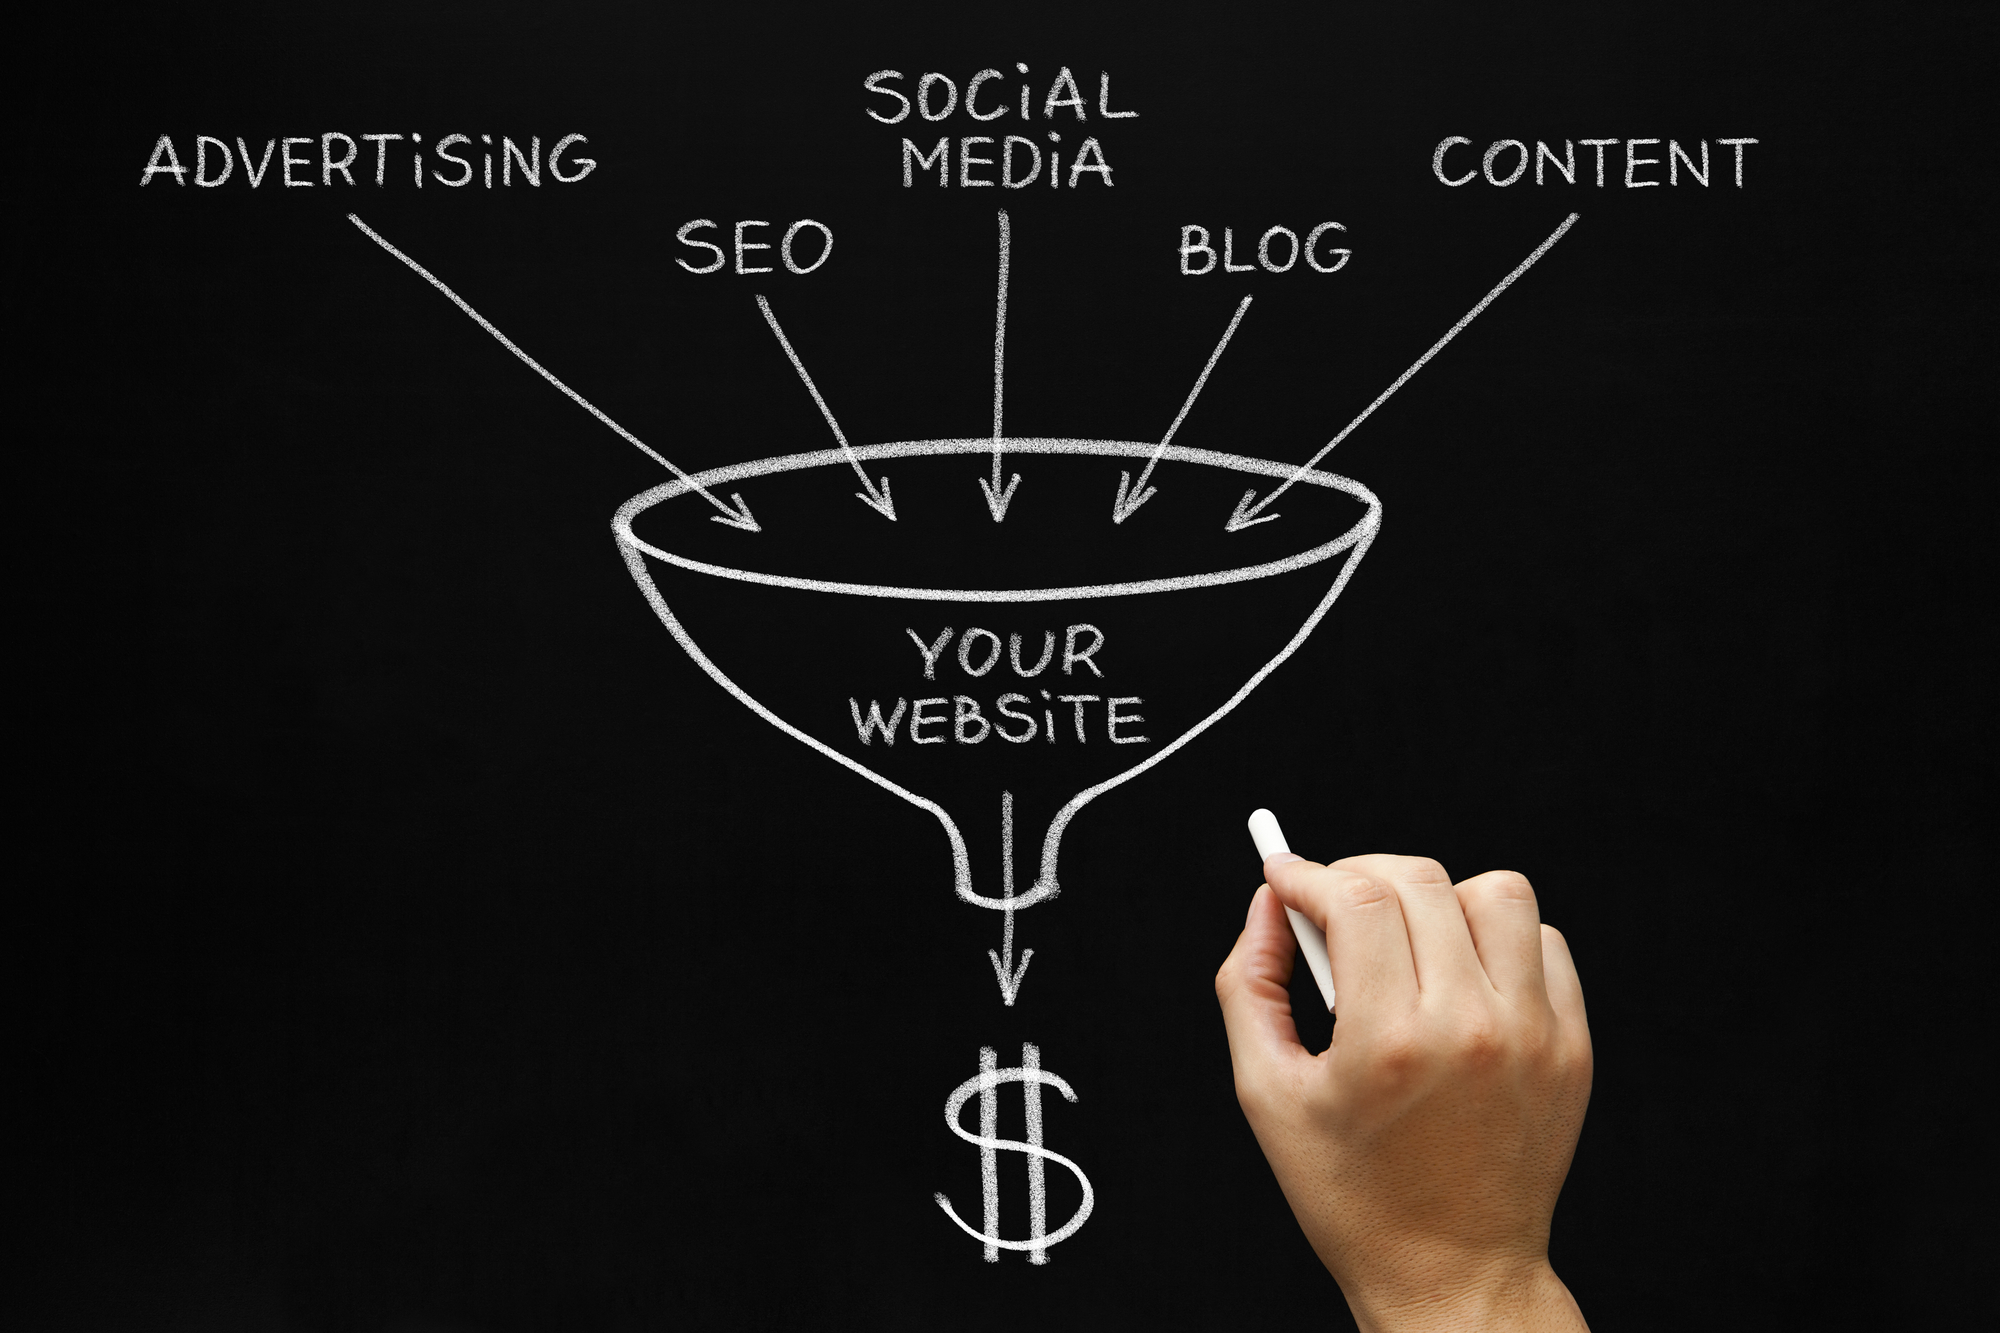 5 Ways You Should Be Marketing Your Website Should by 2020